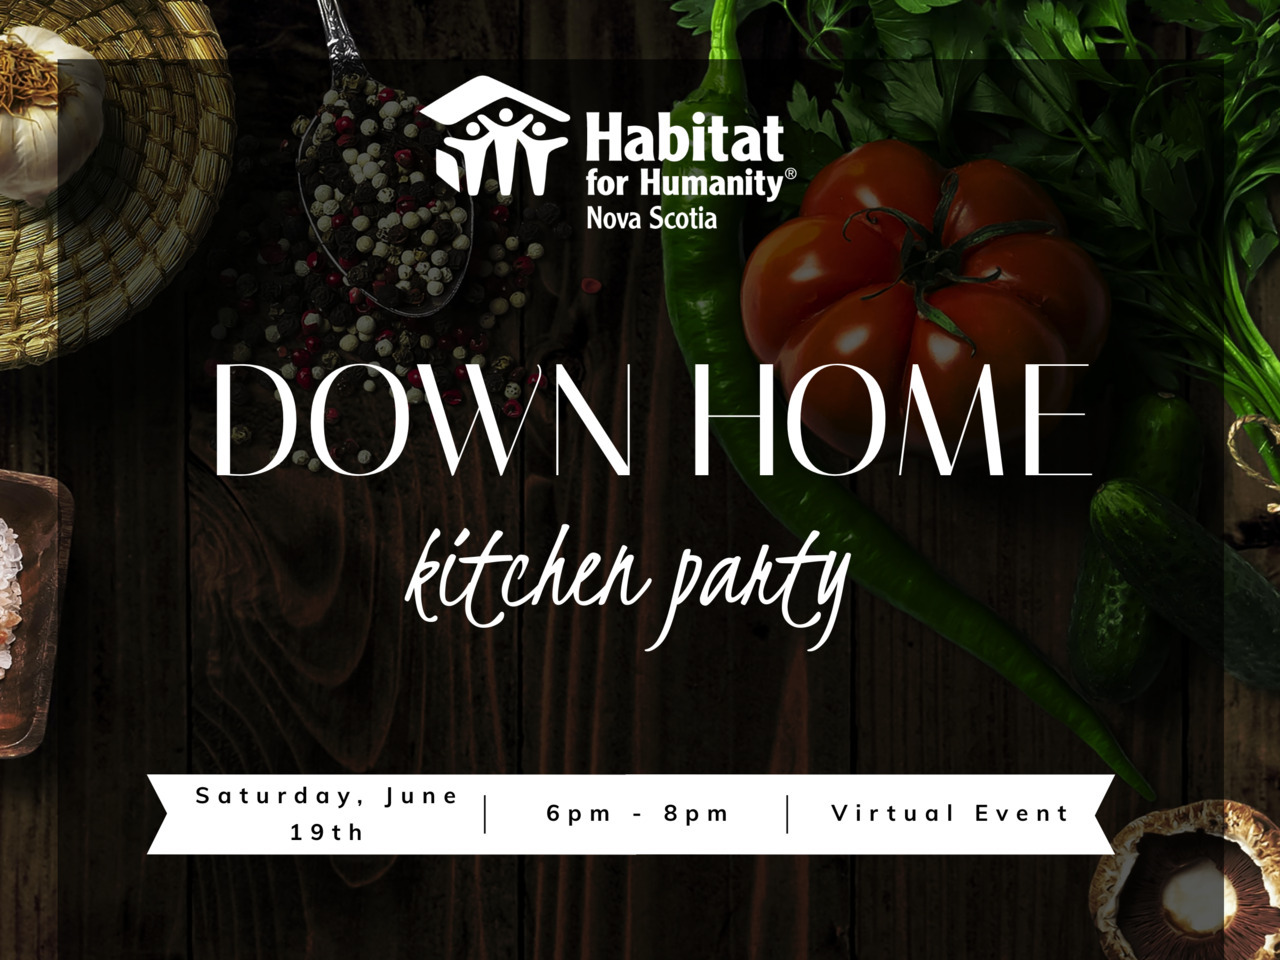 Down Home Kitchen Party